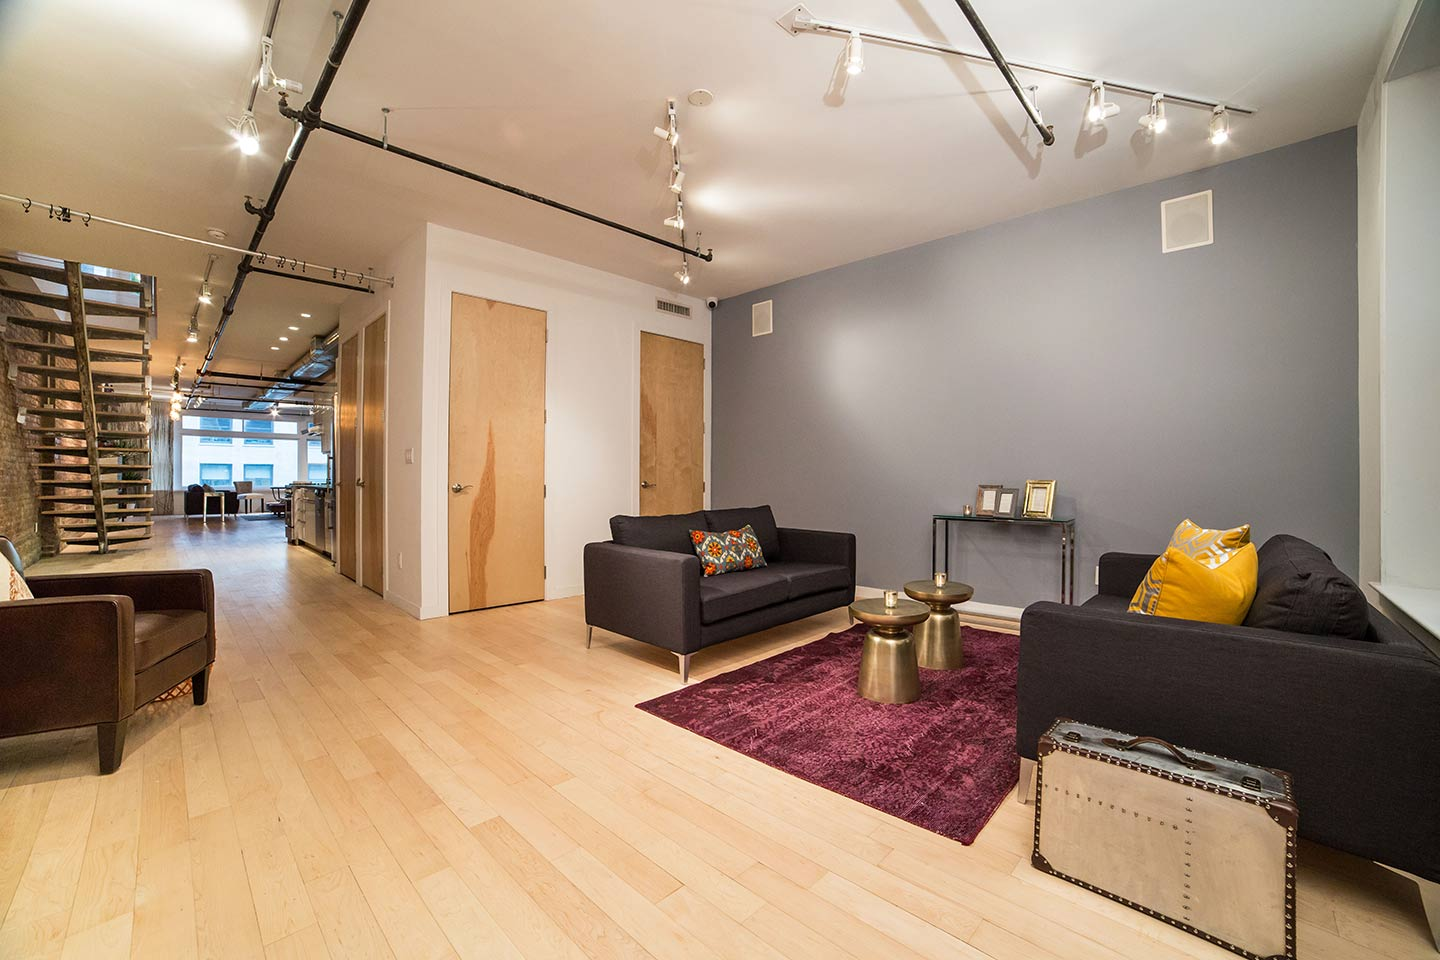 Flatiron District Penthouse Loft Event Space For Meetings And Parties In Manh